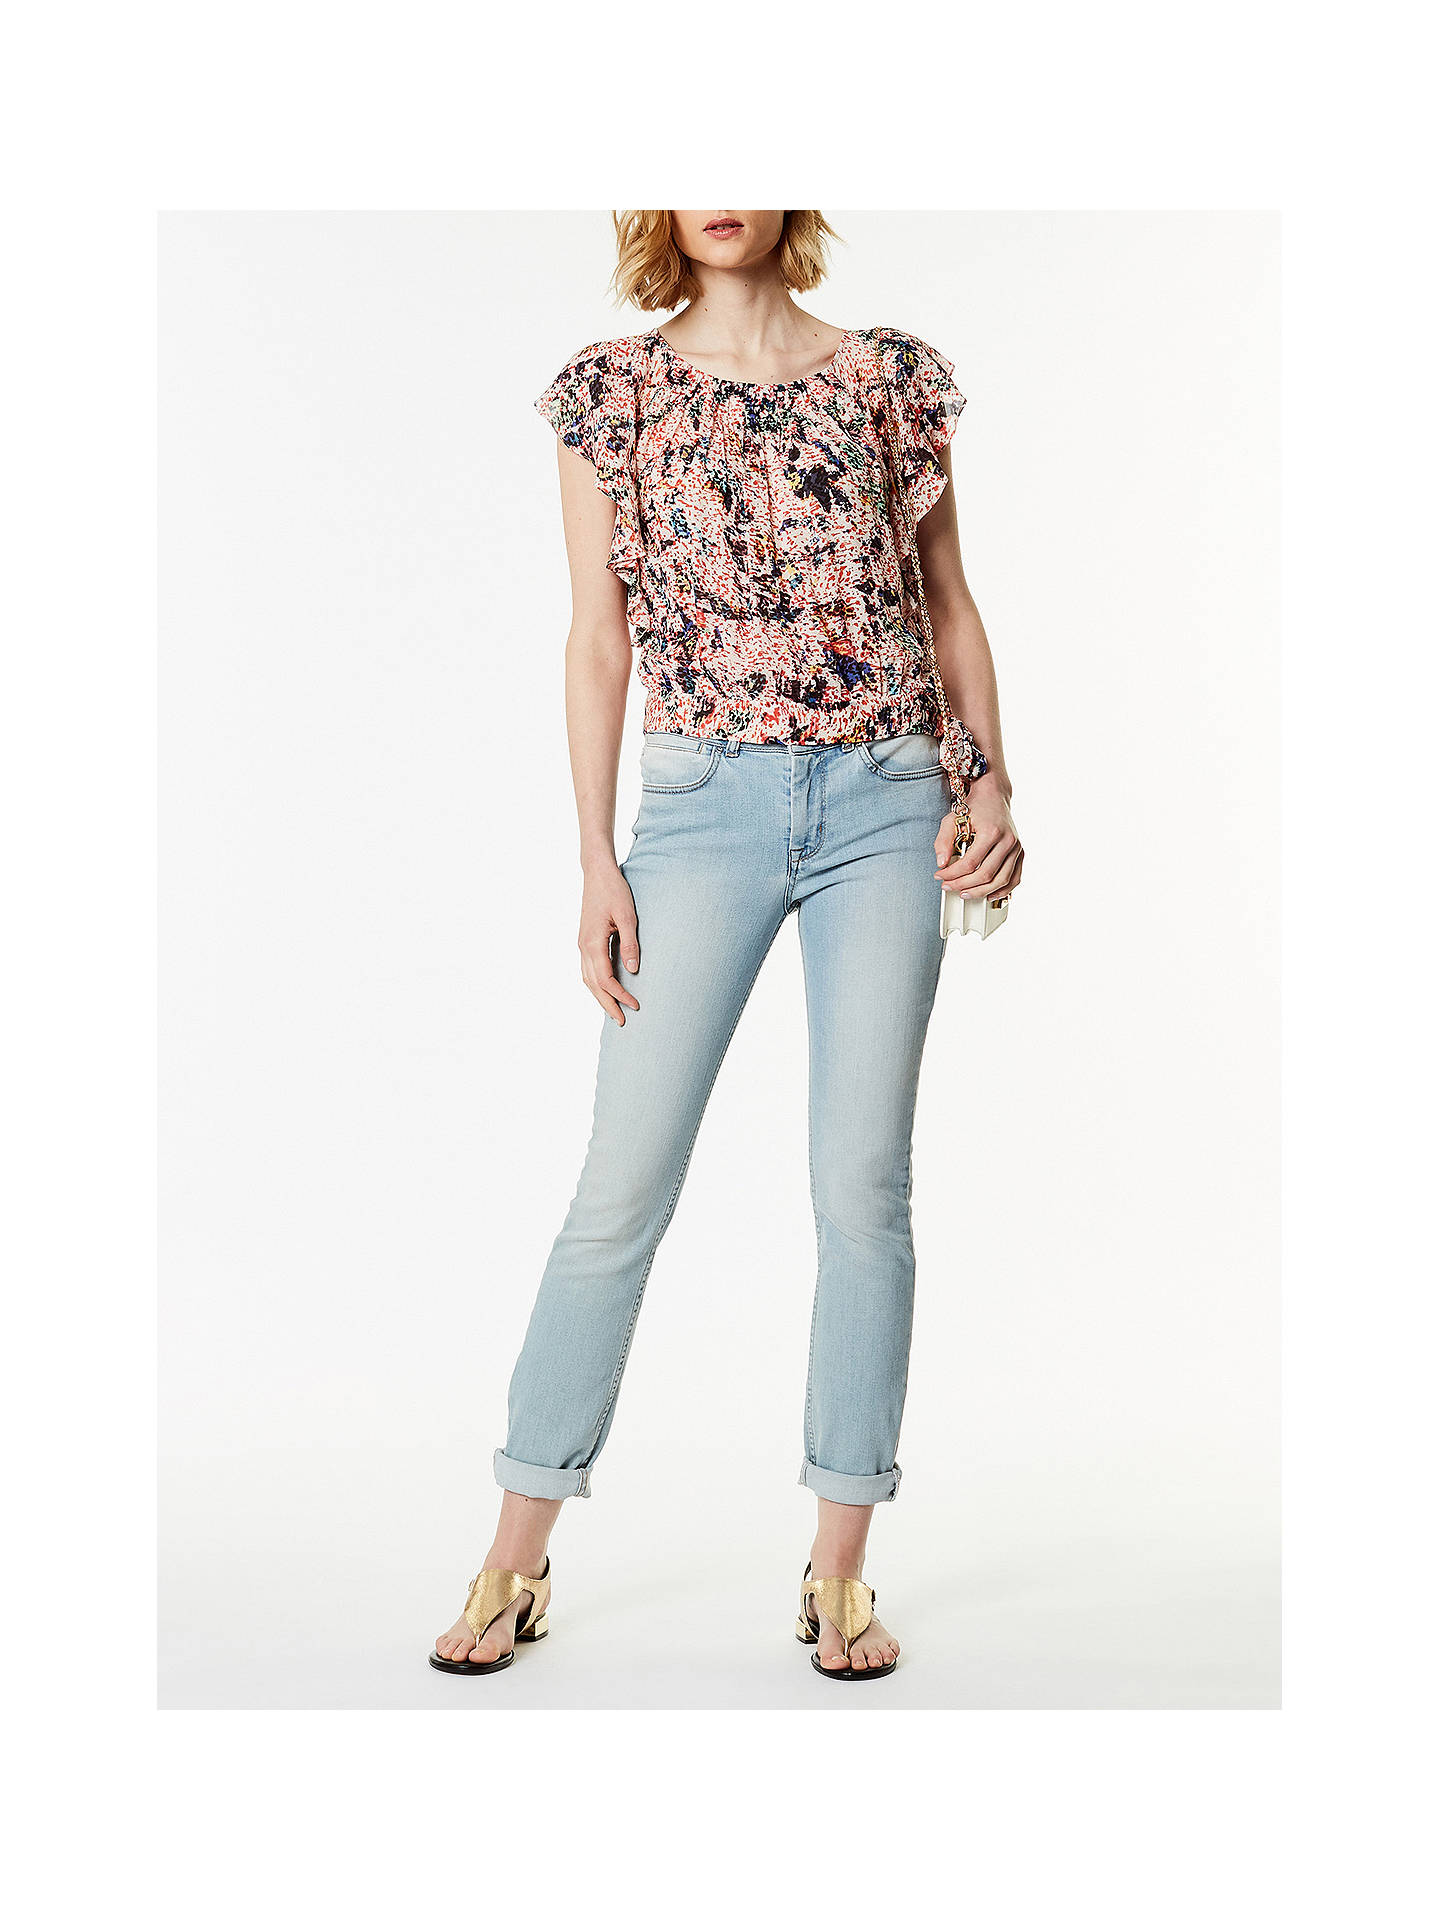 BuyKaren Millen Textured Floral Print Top, Multi, 6 Online at johnlewis.com